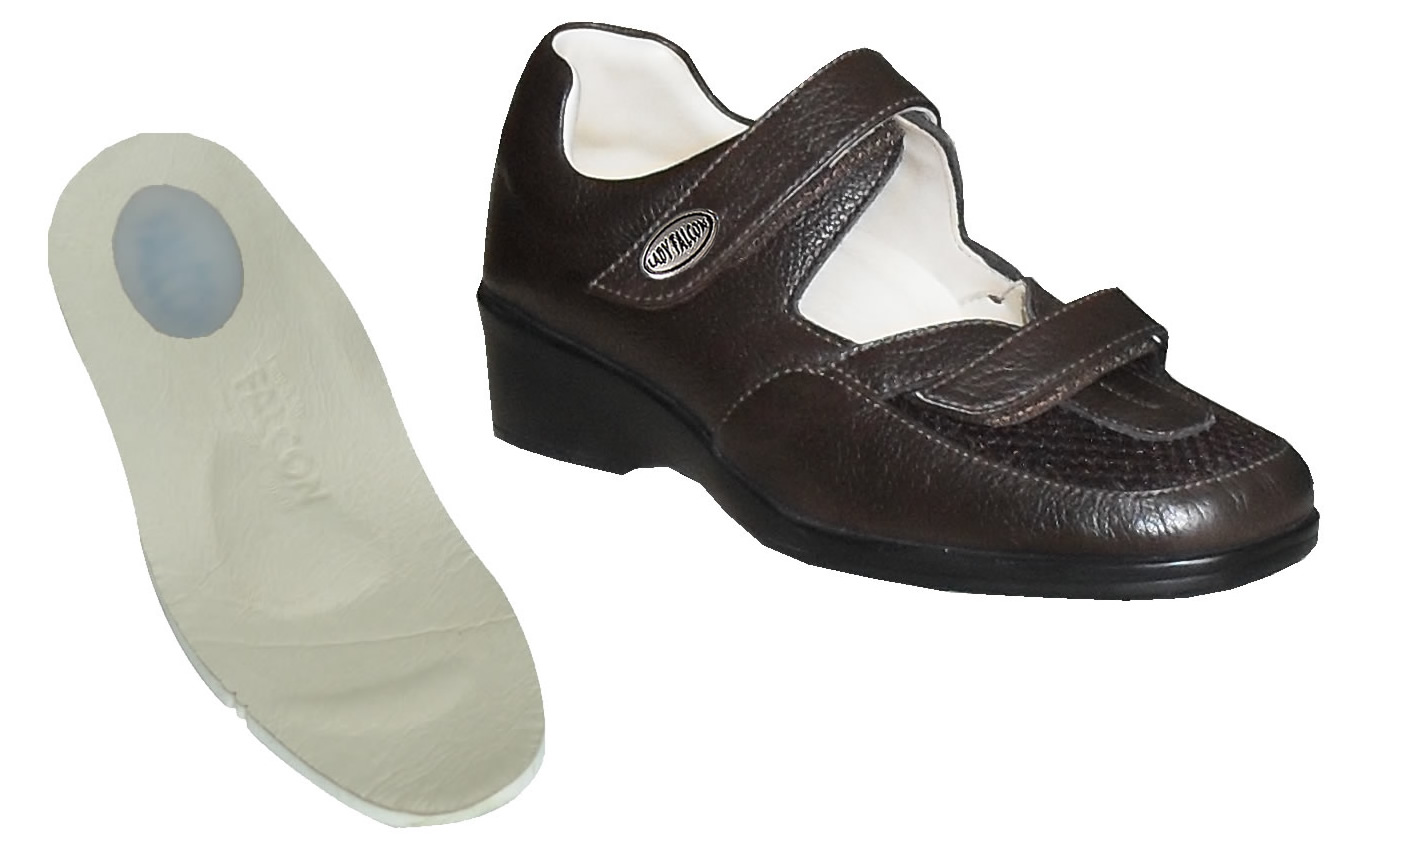 4ca1379948 Ladyfalcon EPTYA 03 model orthopedic shoes for heel pains products are 100%  genuine soft leather products which are produced in 5 different colors.